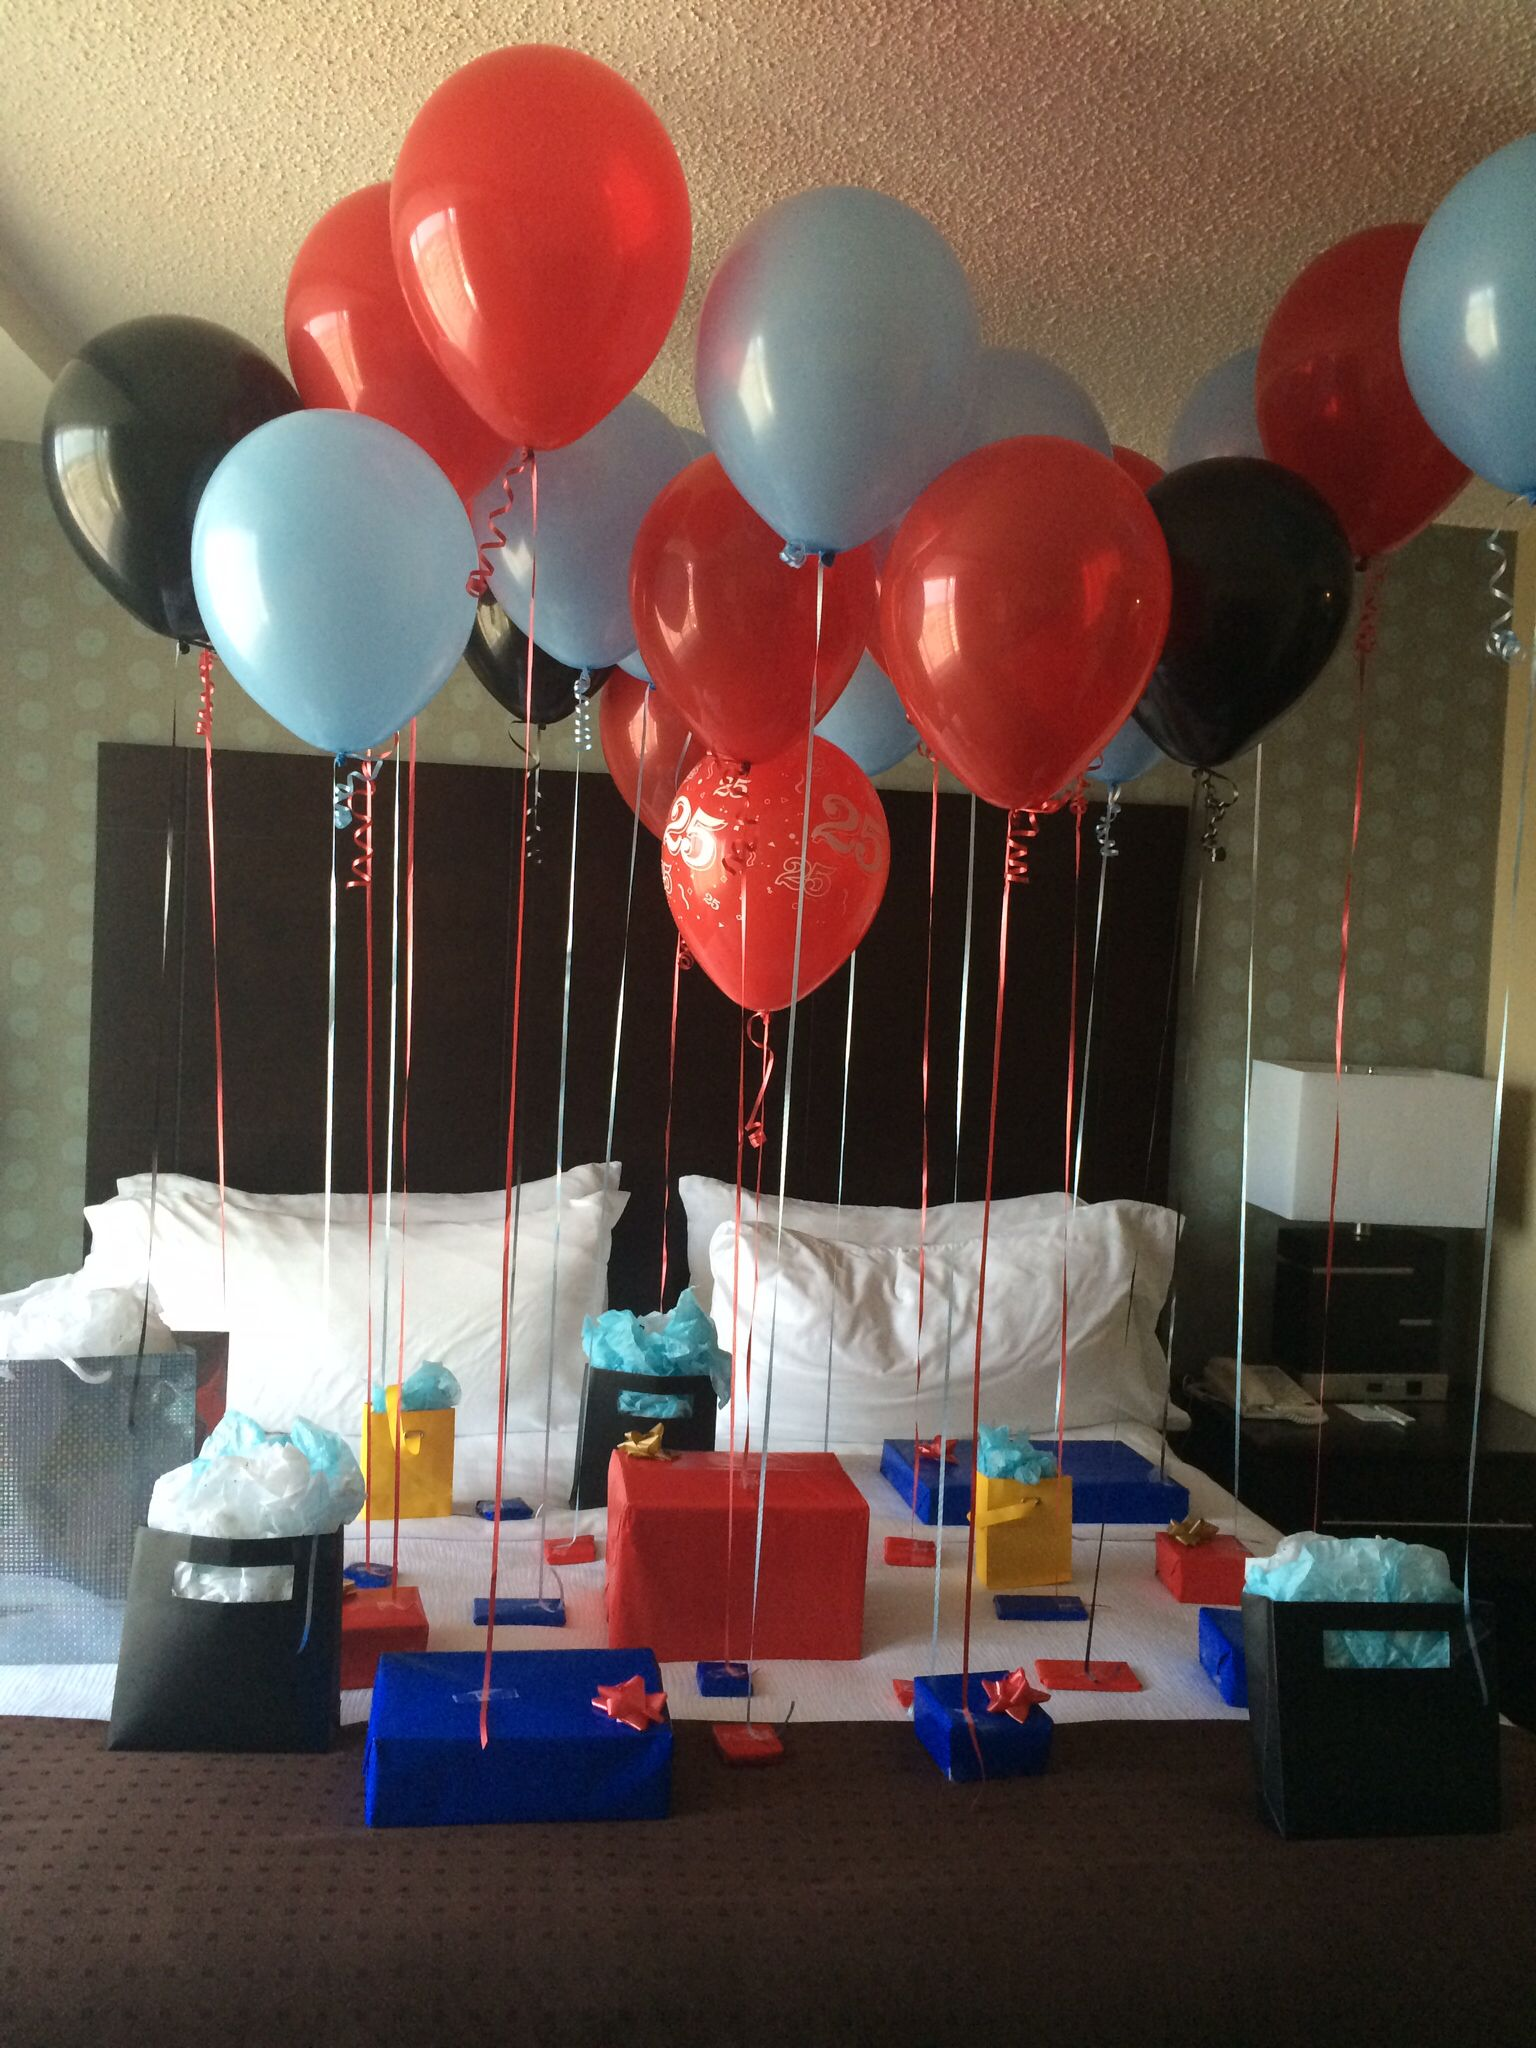 25 gifts for 25th birthday Amazing birthday idea He loved it